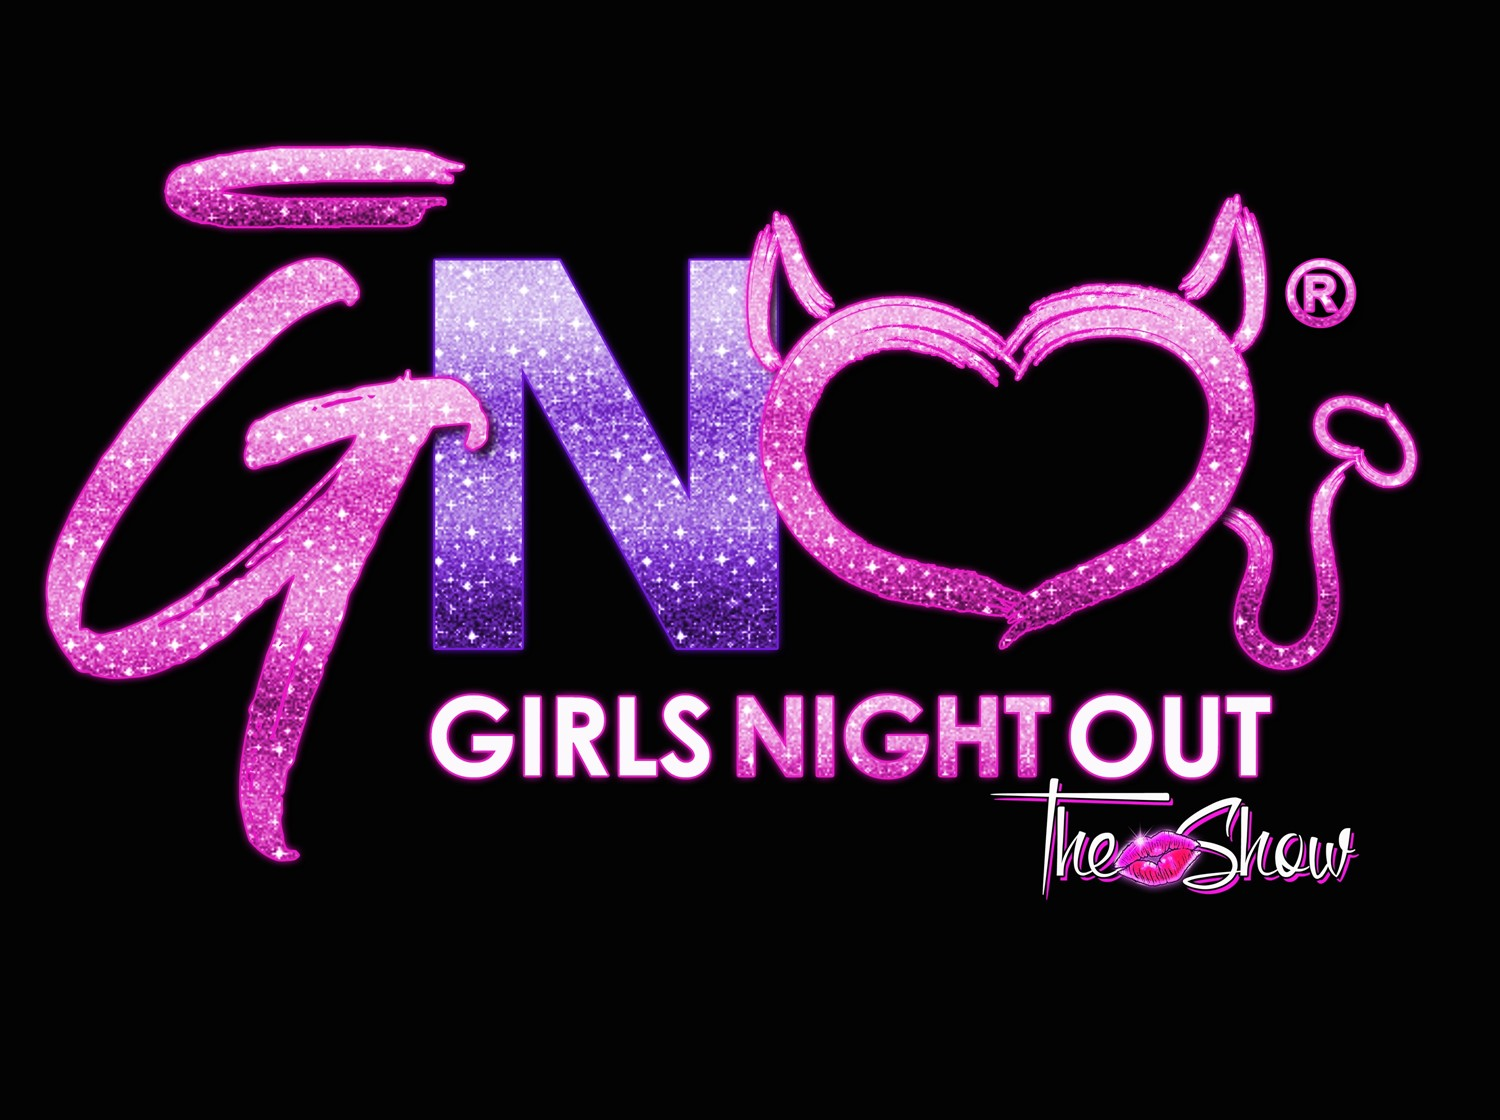 IDL Ballroom (21+) Tulsa, OK on May 07, 20:00@IDL Ballroom - Buy tickets and Get information on Girls Night Out the Show tickets.girlsnightouttheshow.com